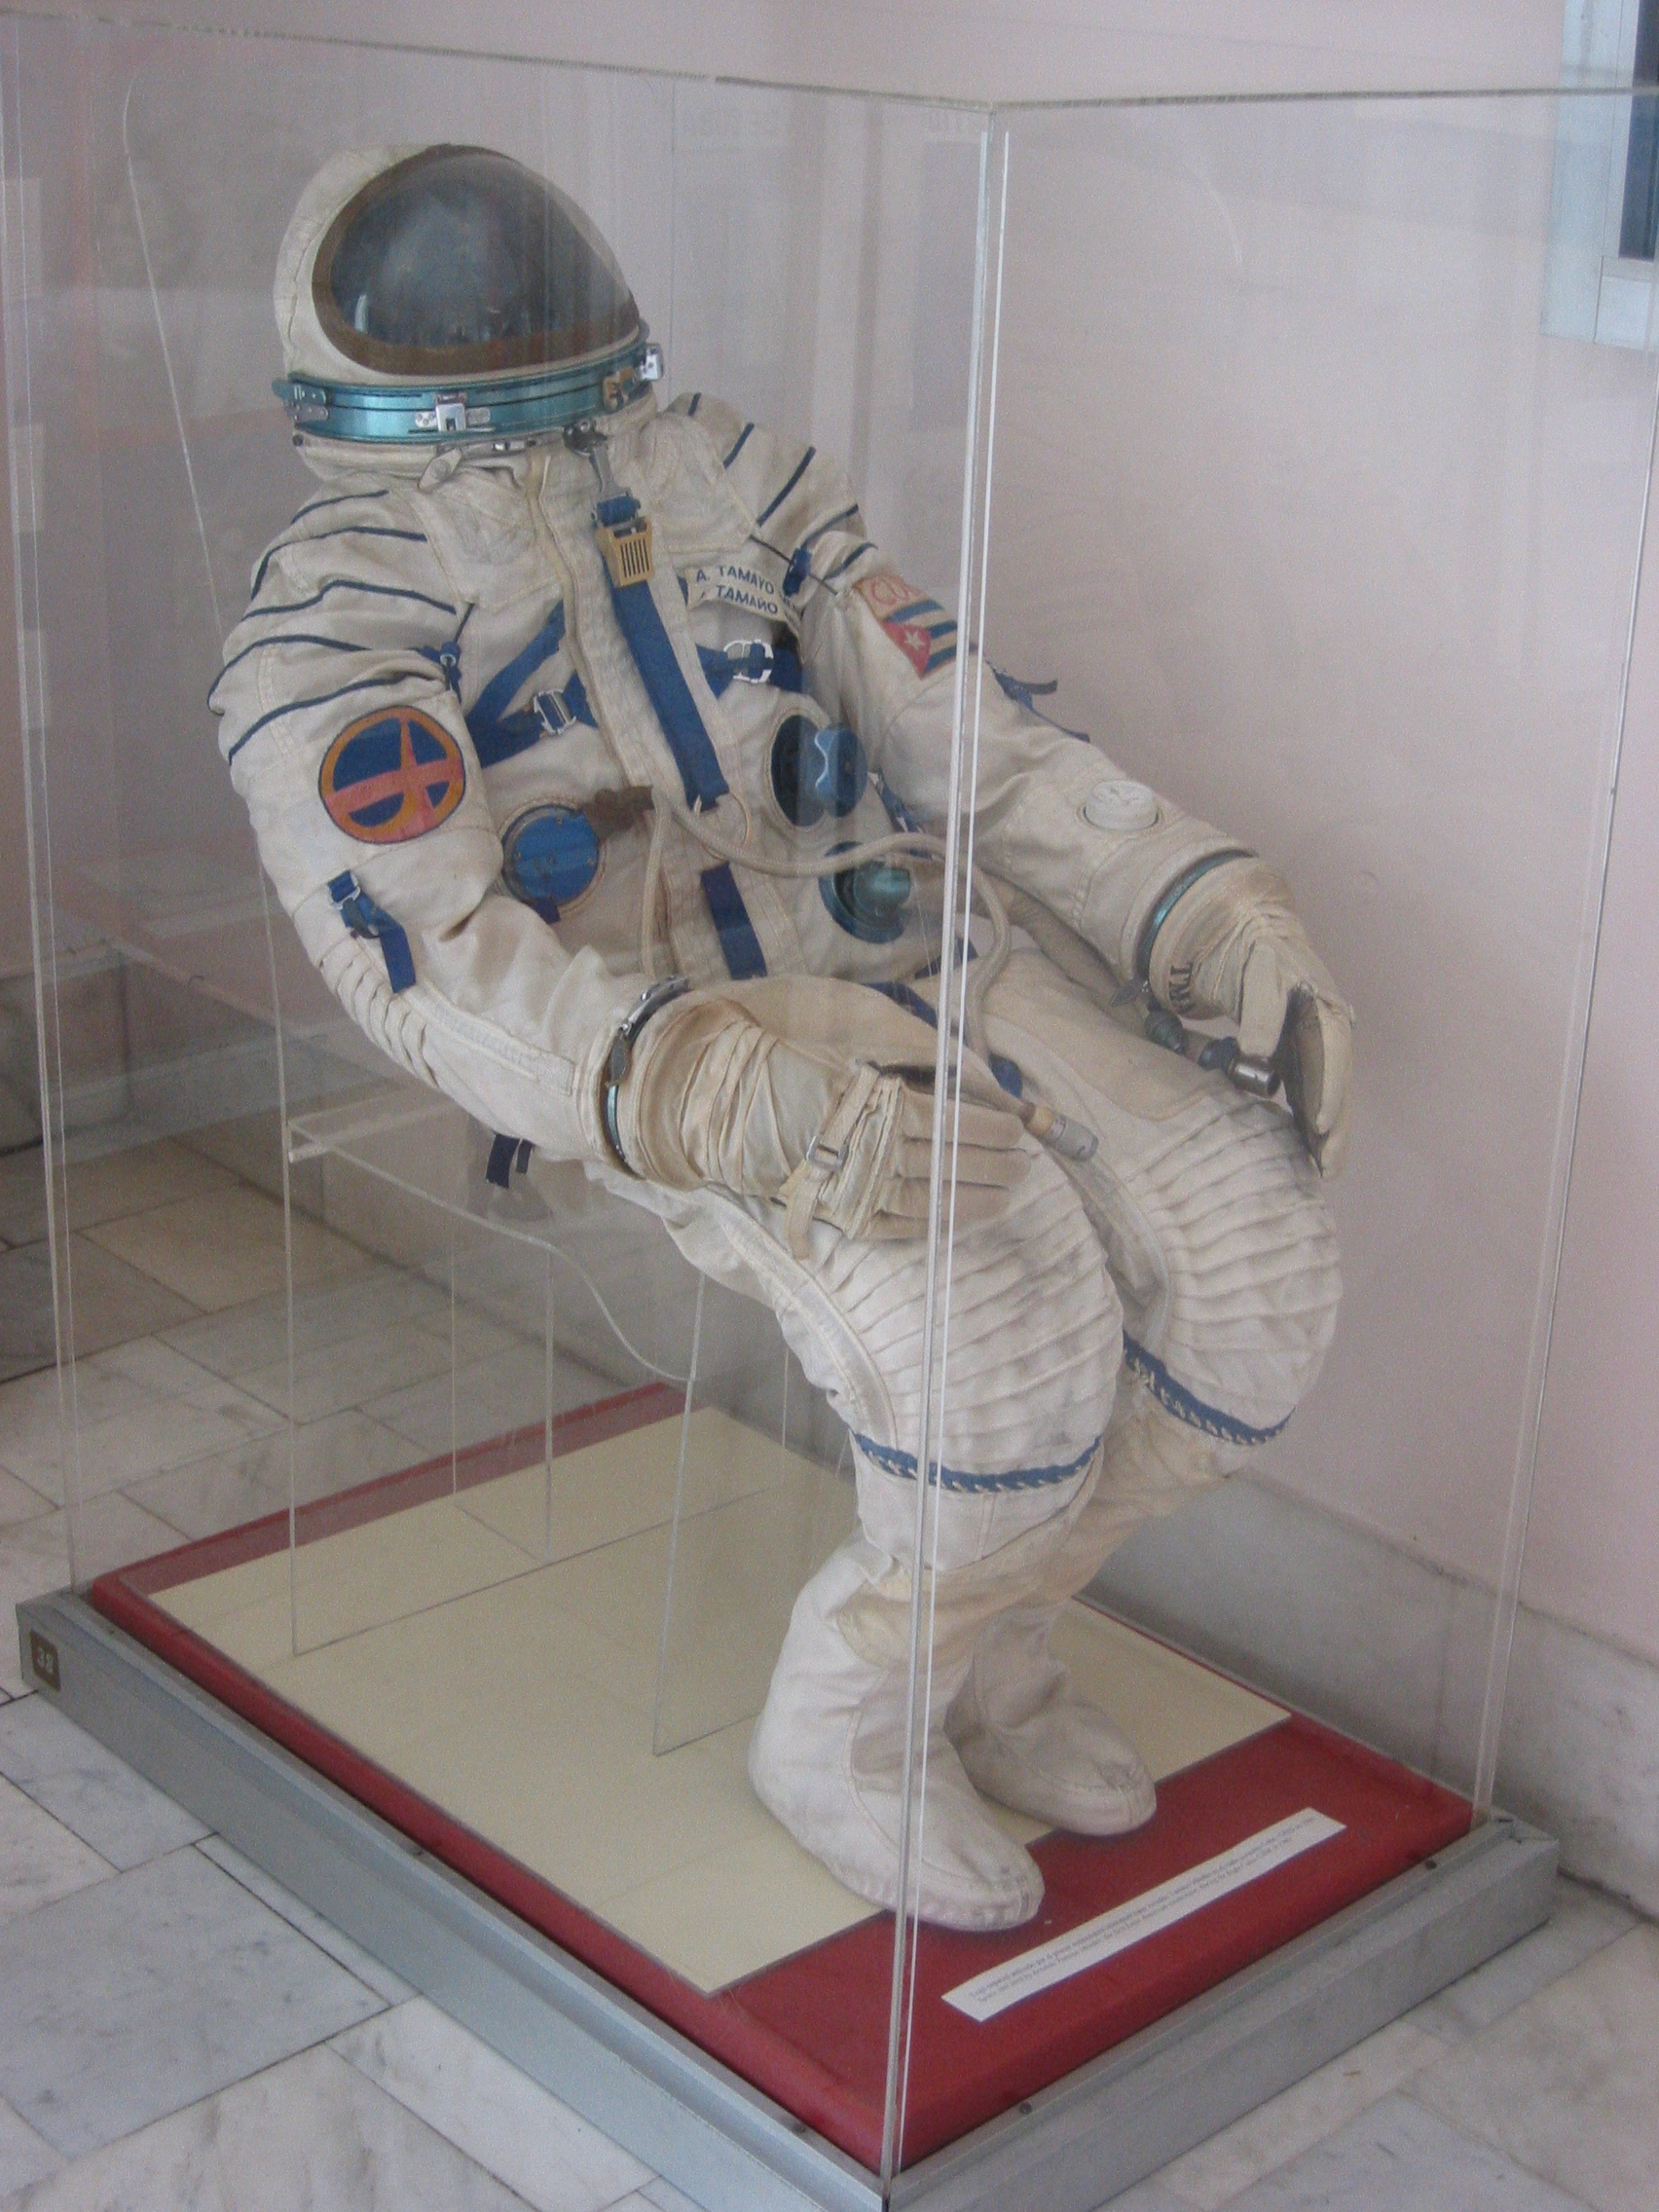 Arnaldo Tamayo's space suit, on display at Museo de la Revolución, Havana, Cuba